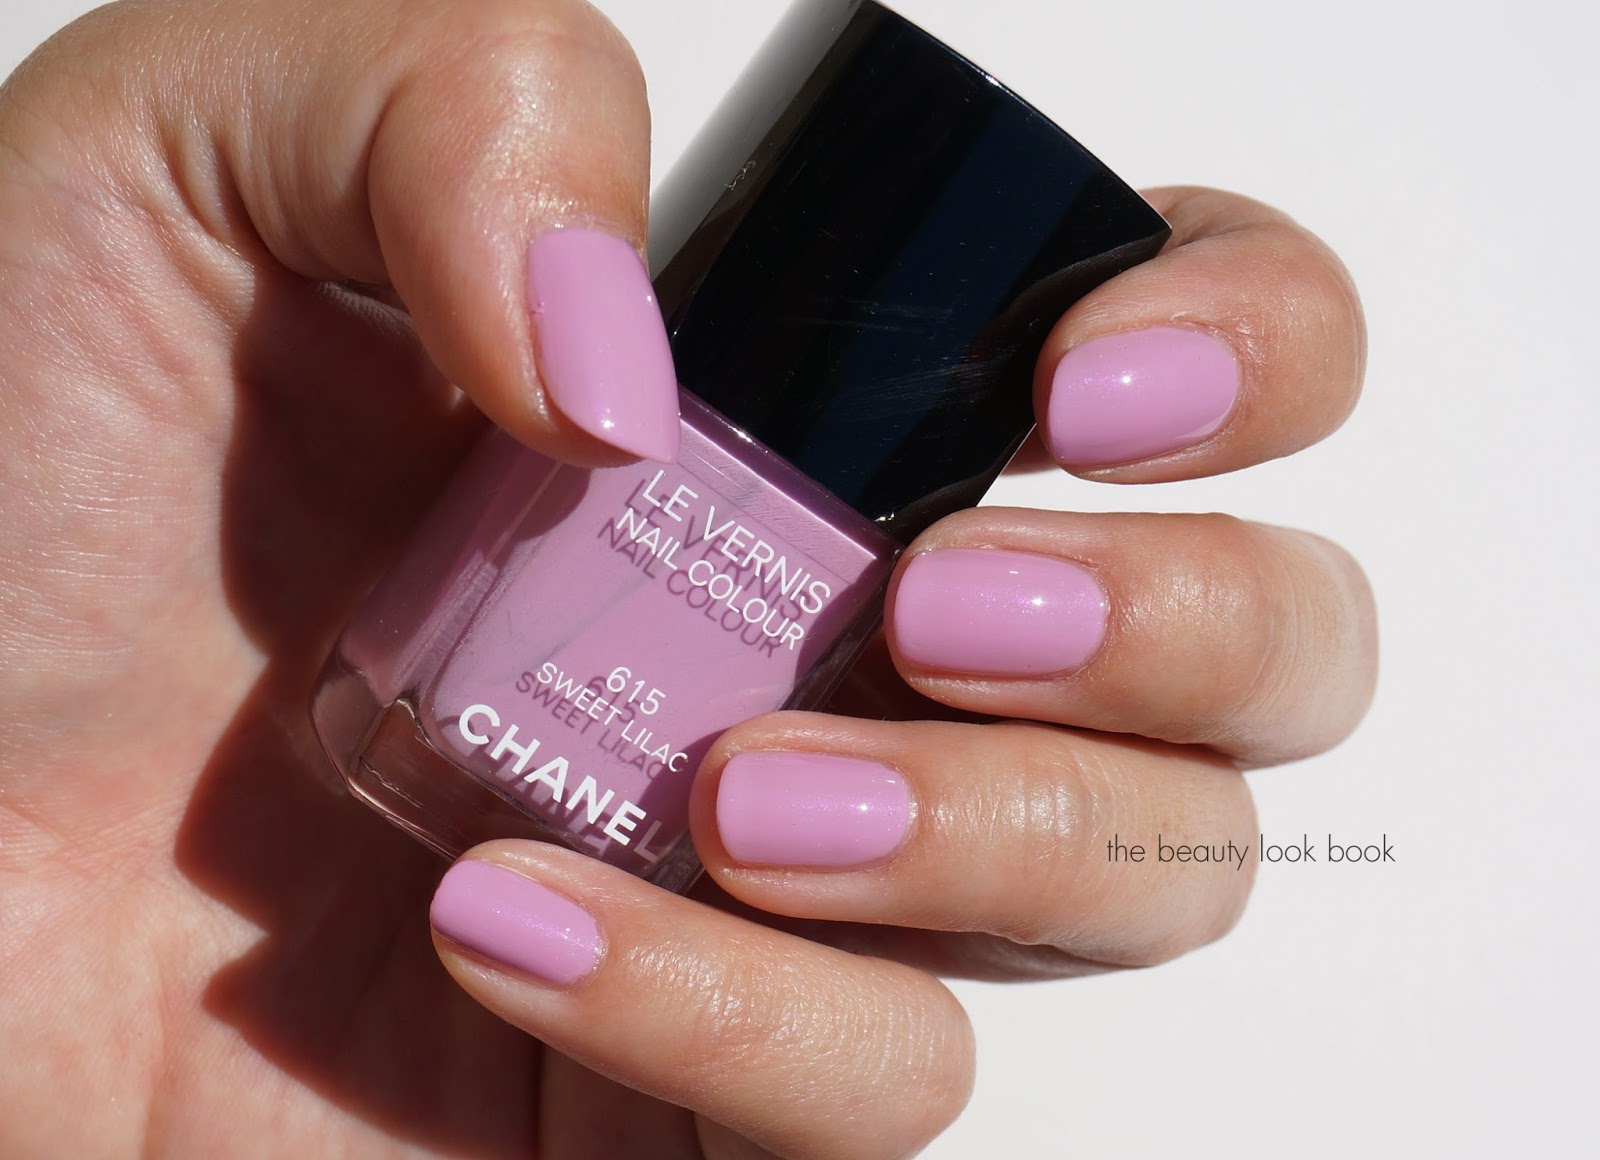 Chanel Sweet Lilac 615 Le Vernis | The Beauty Look Book